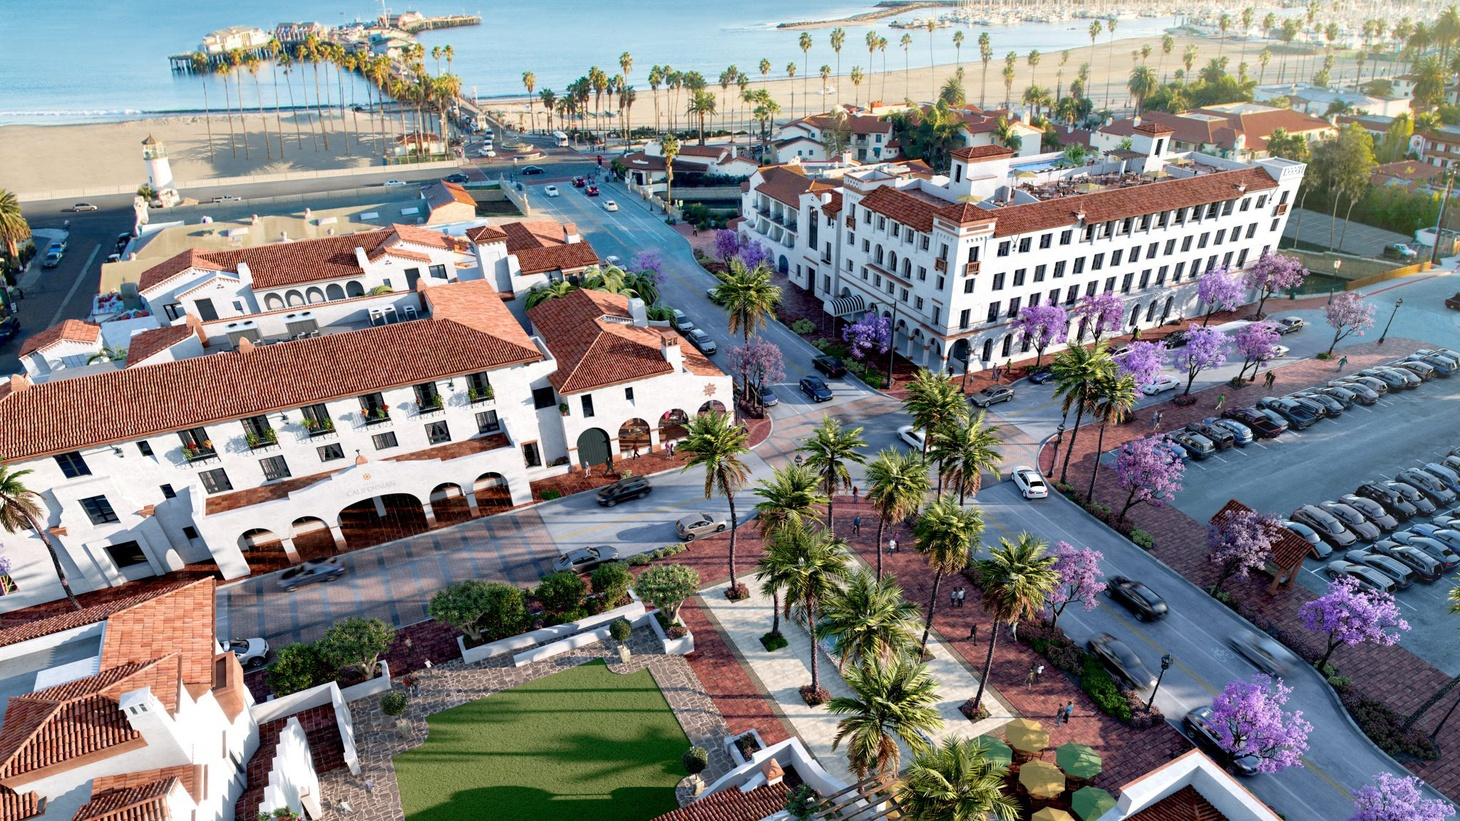 A new development called La Entrada sits between Santa Barbara's waterfront,  the Funk Zone neighborhood and the city's Amtrak station.